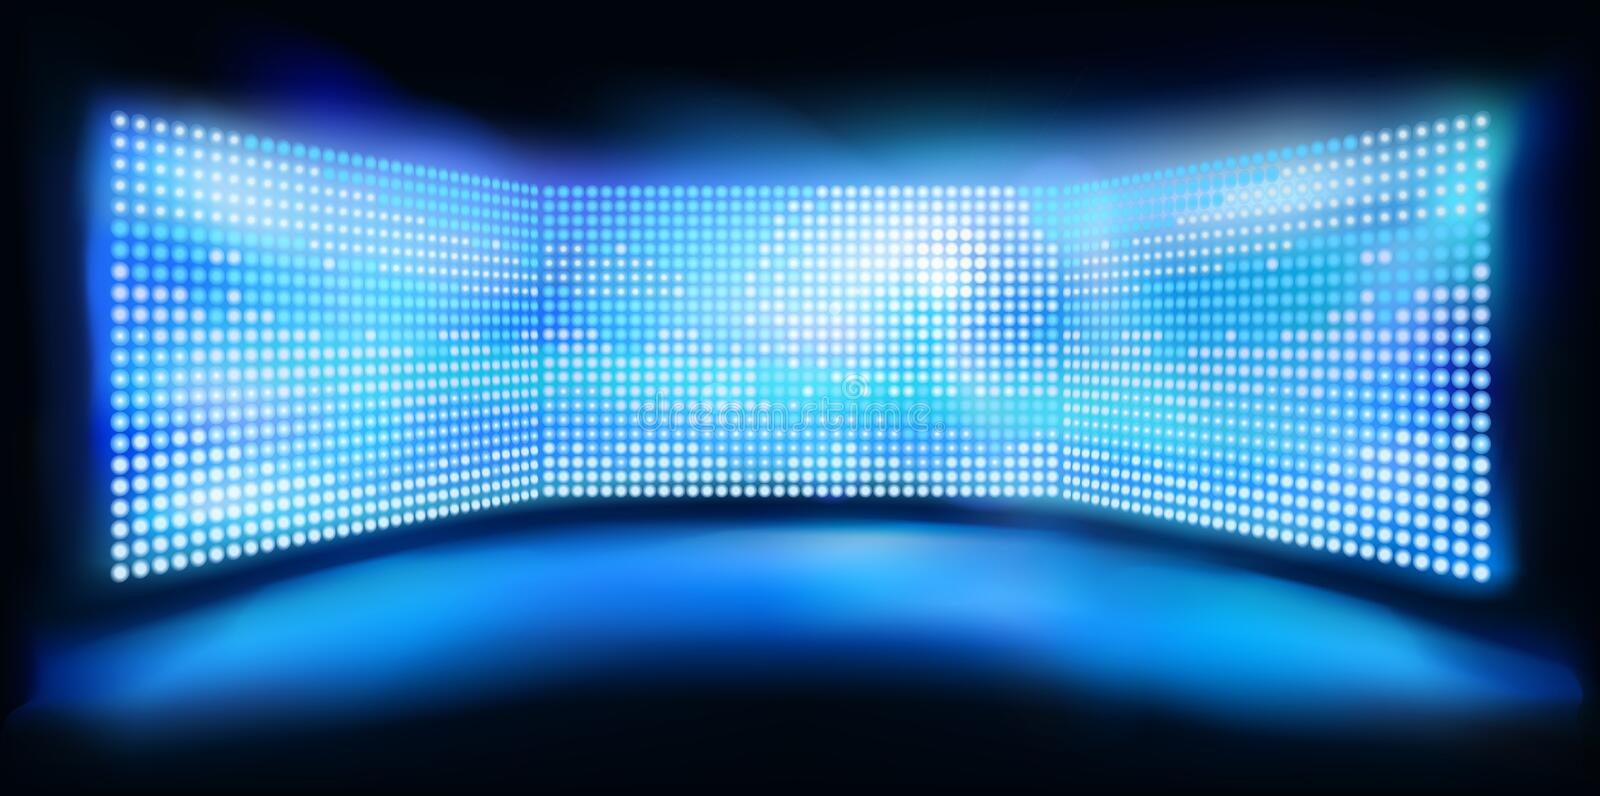 Led Screens Stock Illustrations – 402 Led Screens Stock ...